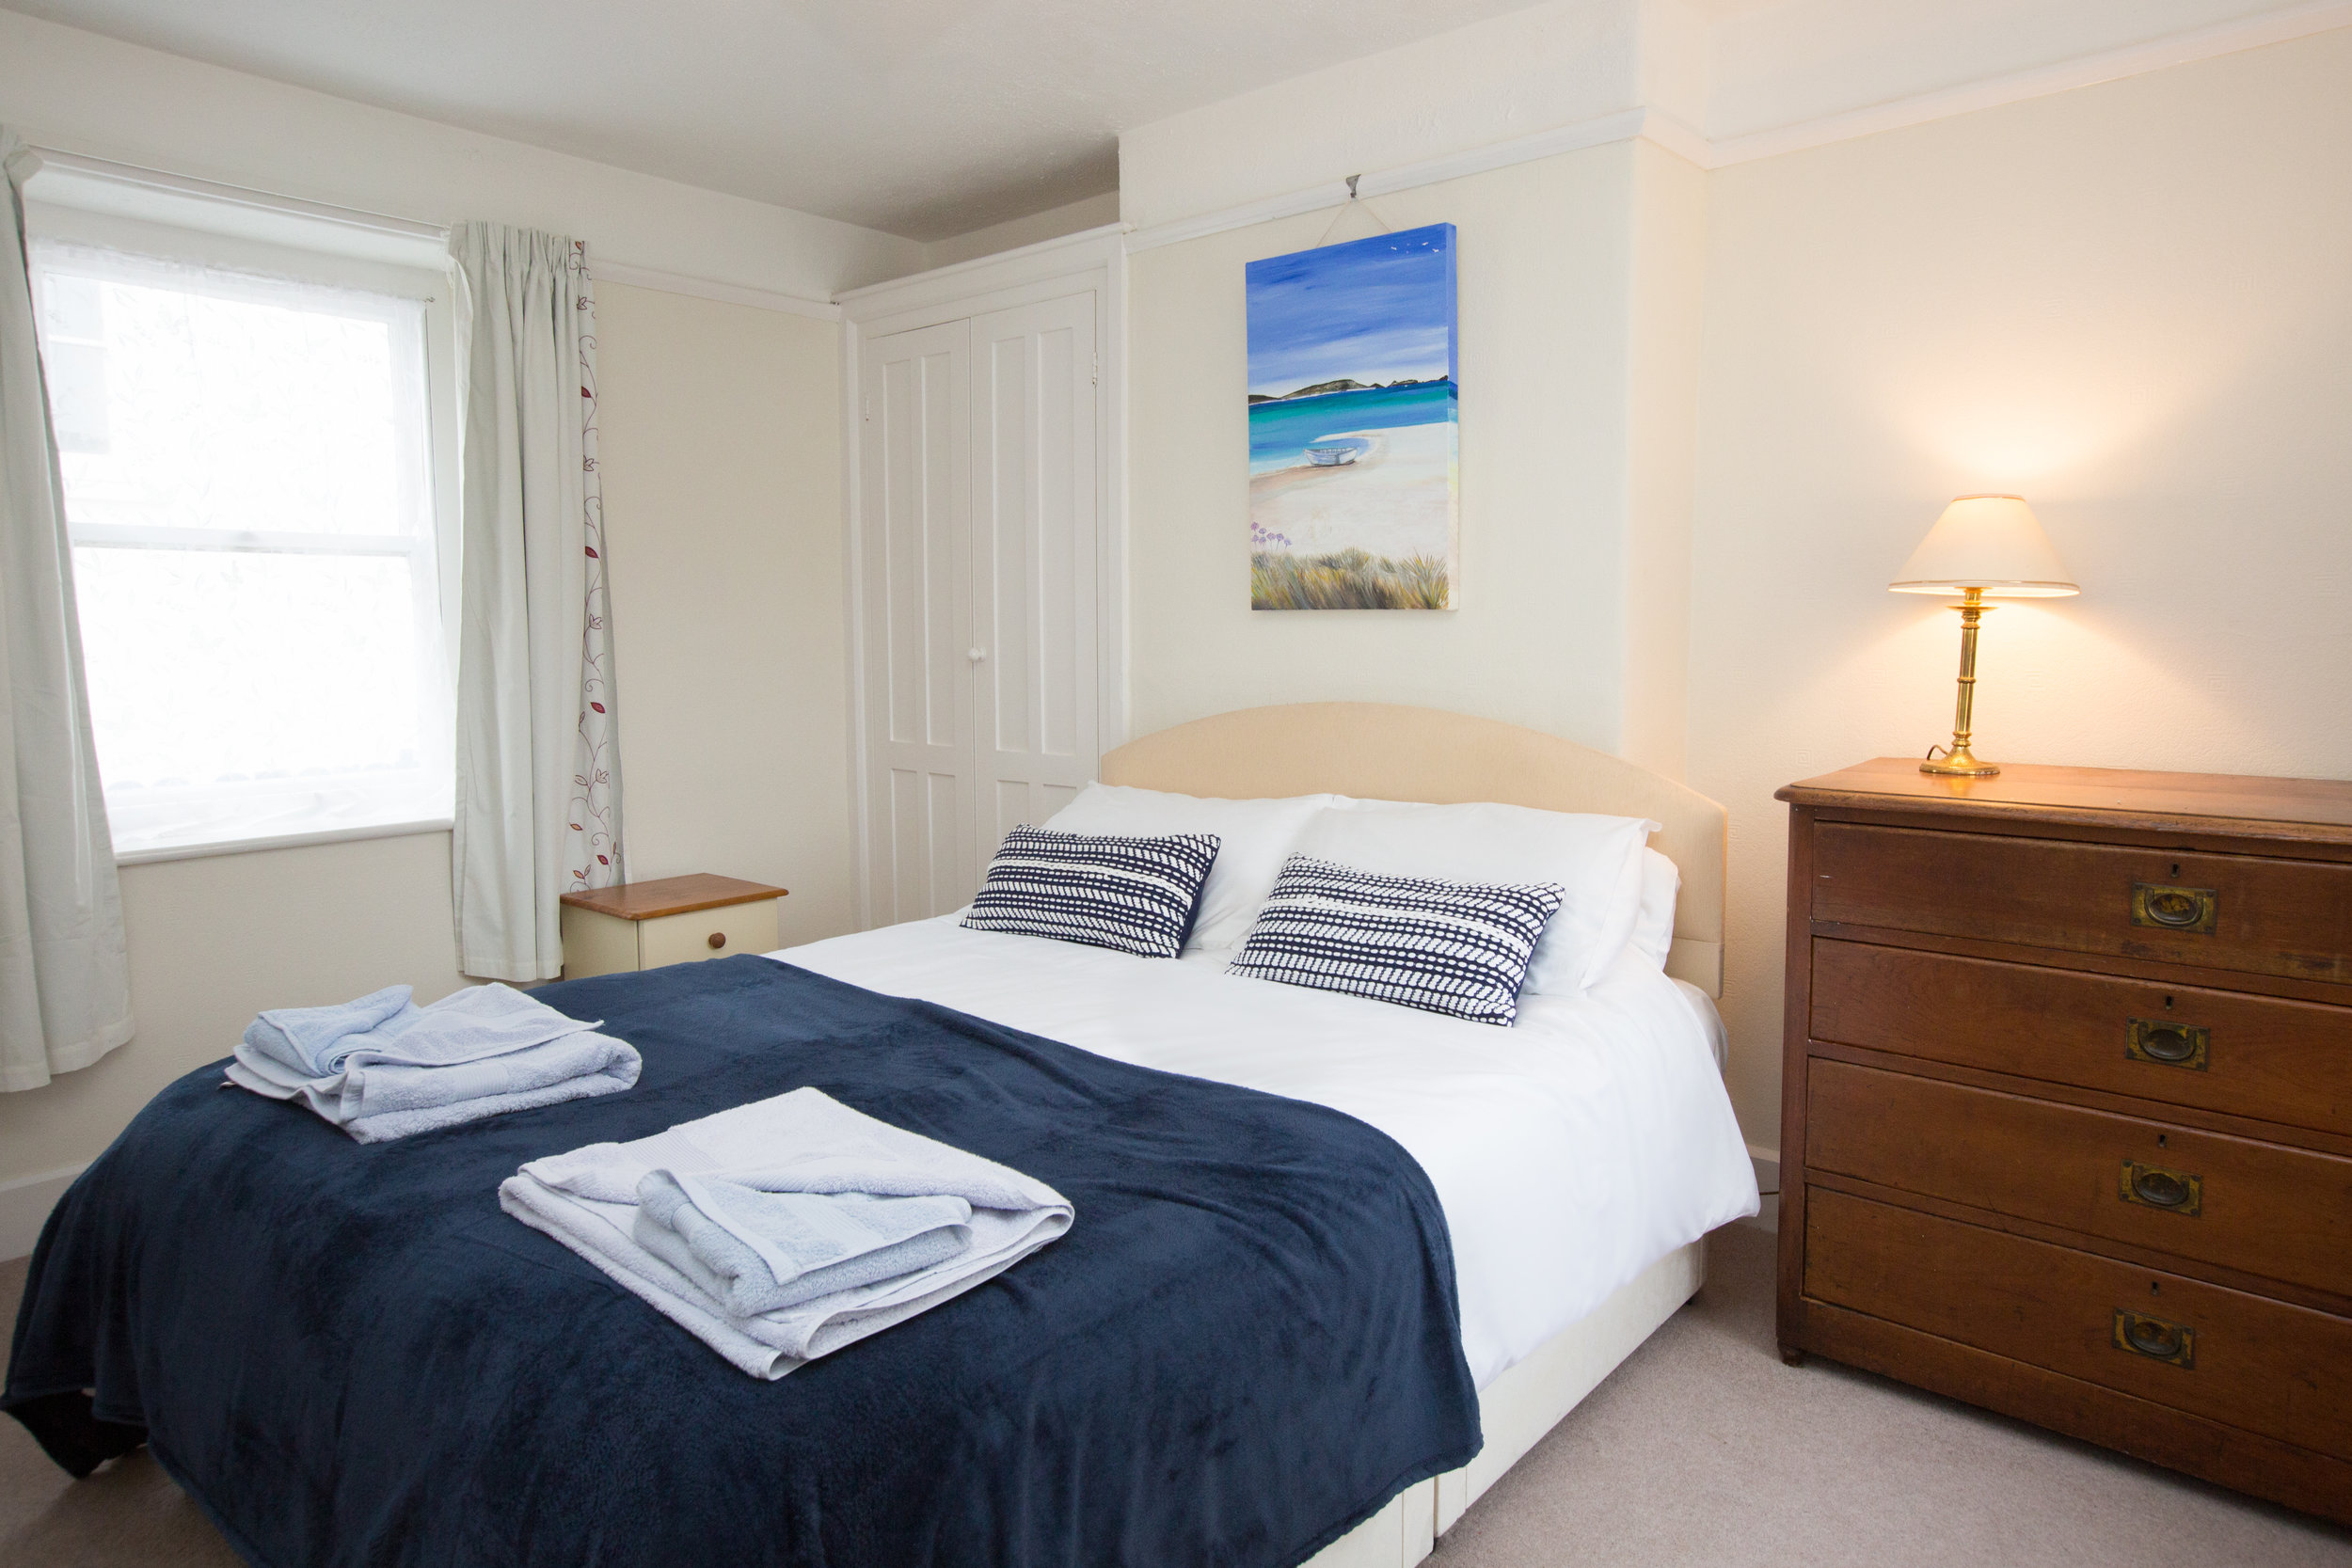 Accommodation - Riduna self catering is a stunning and modern property located in the heart of Hugh Town.